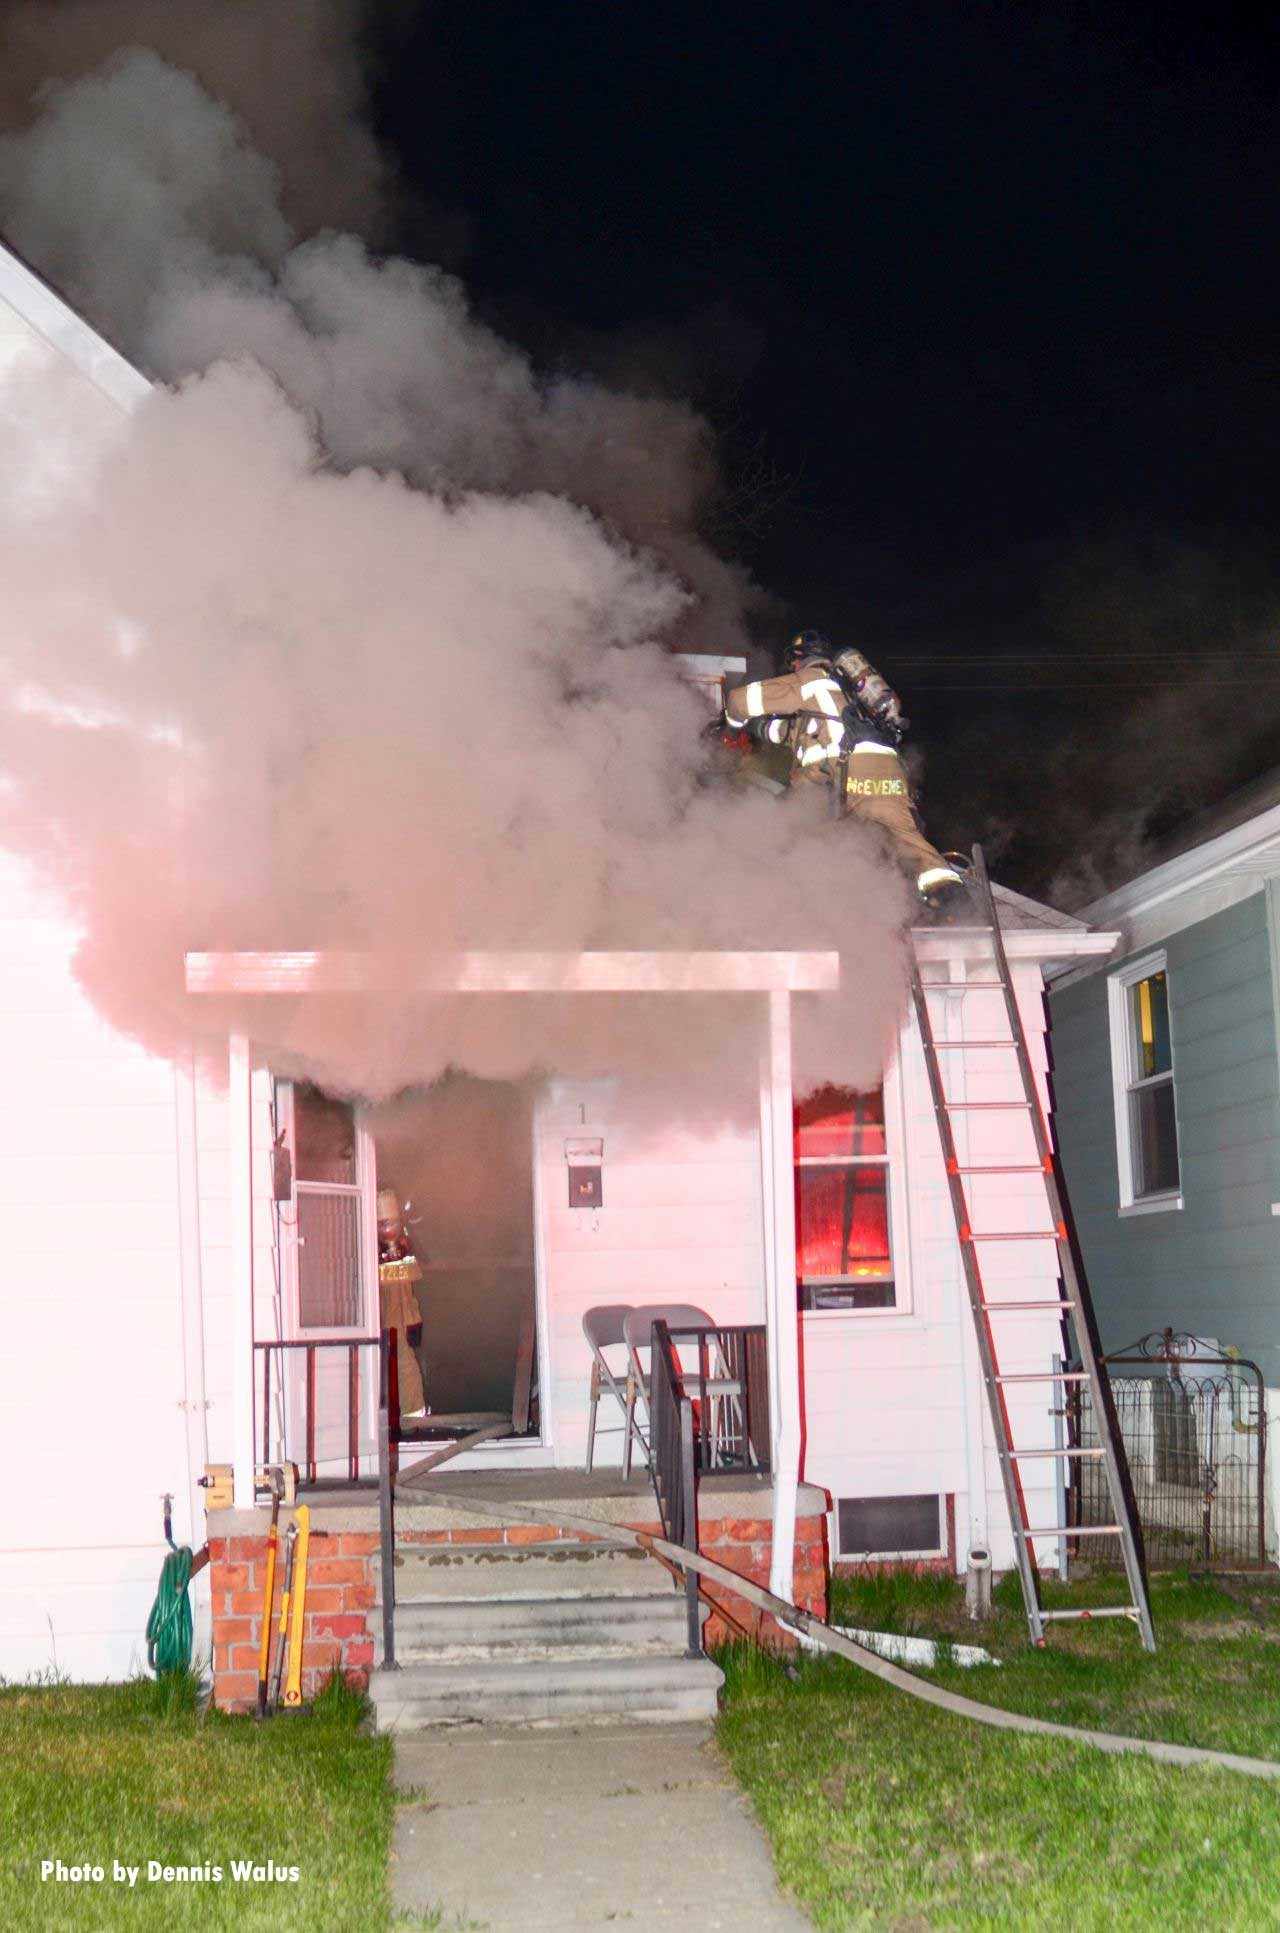 A firefighter climbs a ladder and makes it on to the roof amidst smoke